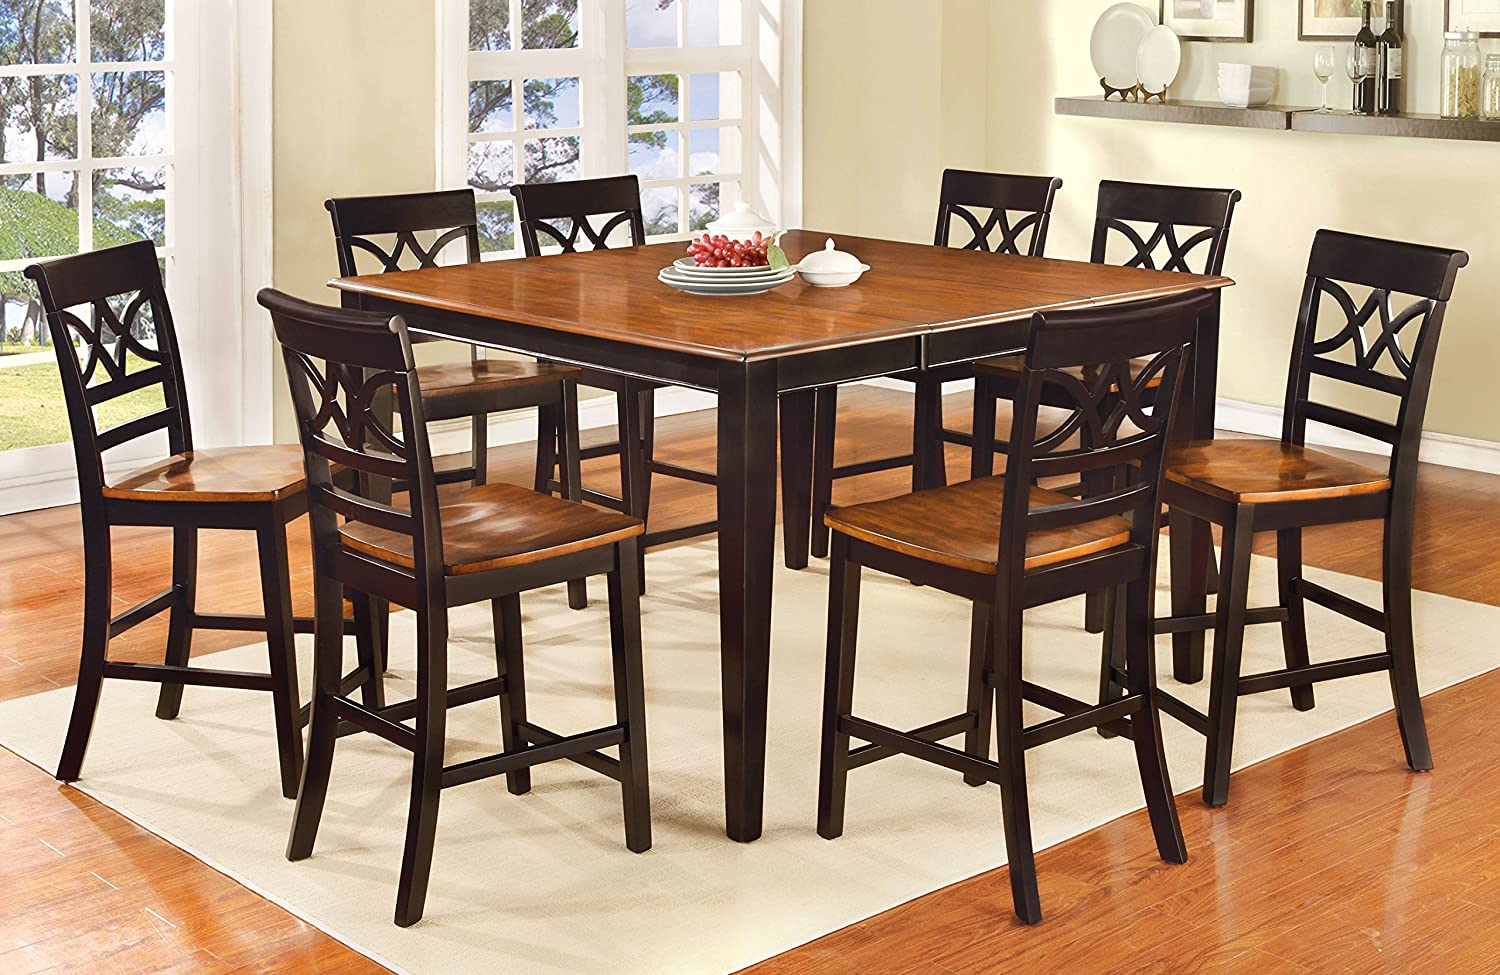 Amazon.com - Furniture of America Cherrine 9-Piece Country Style Pub Dining Set Oak/Black - Table u0026 Chair Sets : pub dining table set - Pezcame.Com